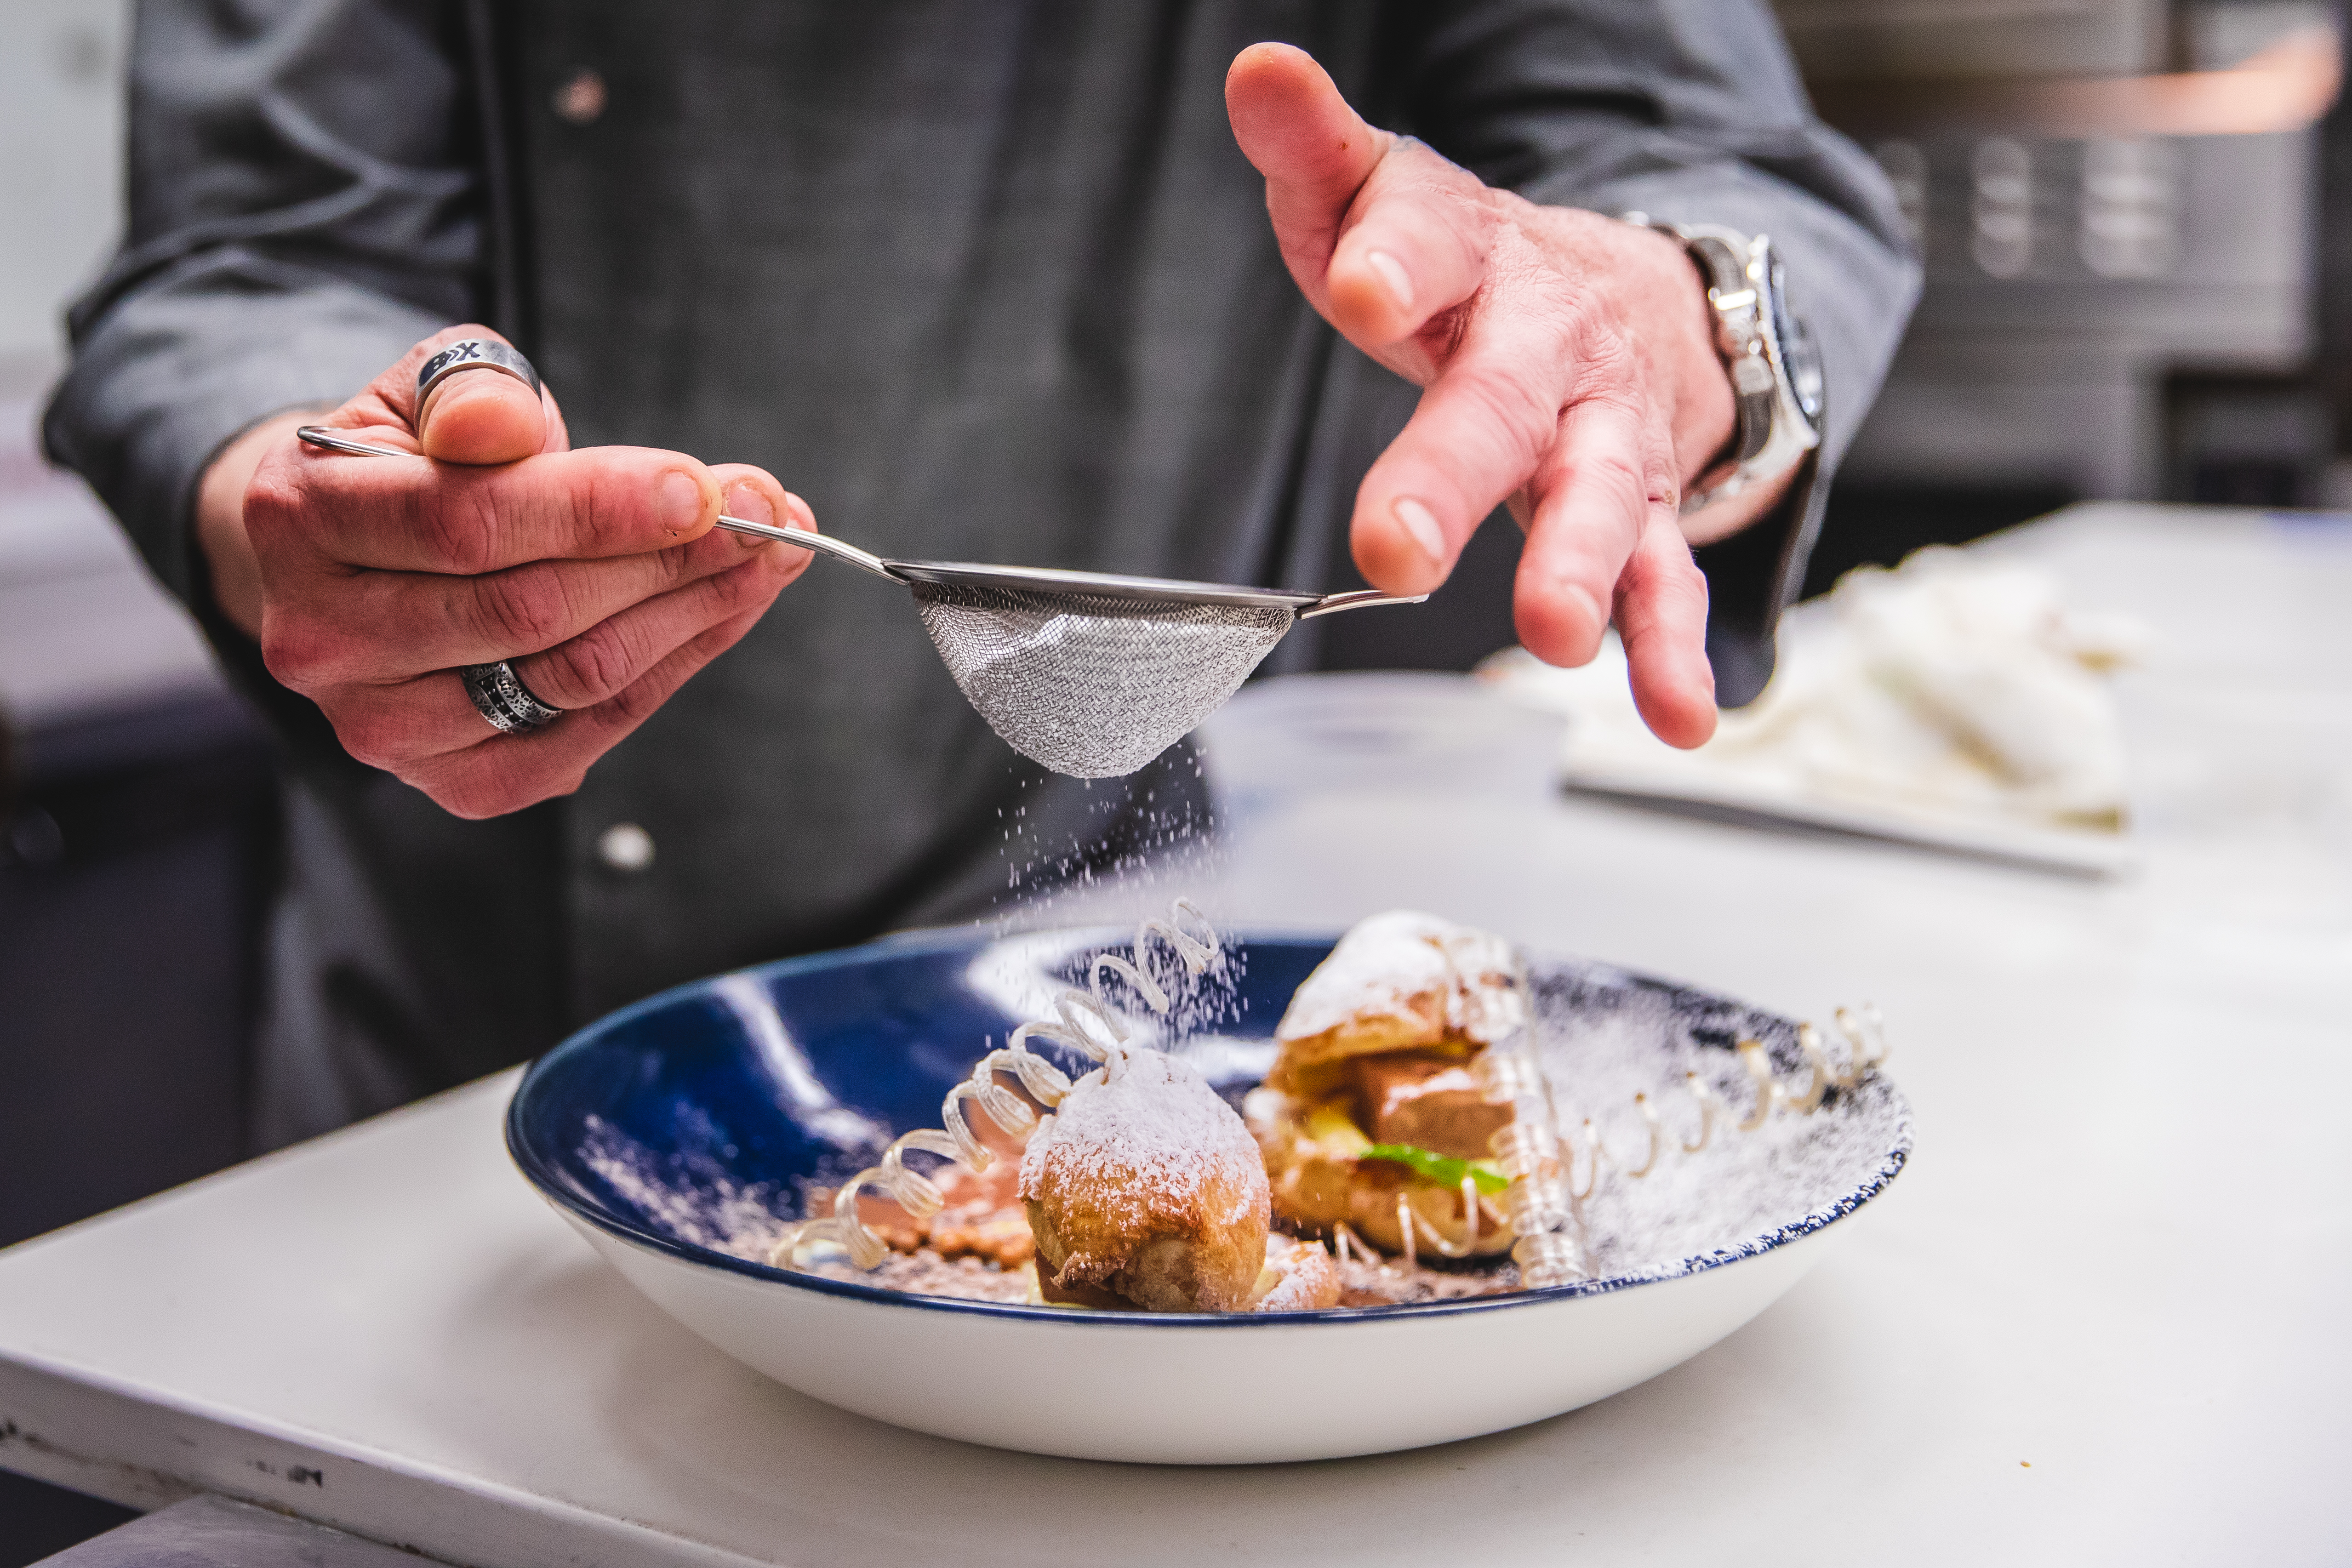 A pair of hands dust a pastry dessert with powdered sugar through a small sieve